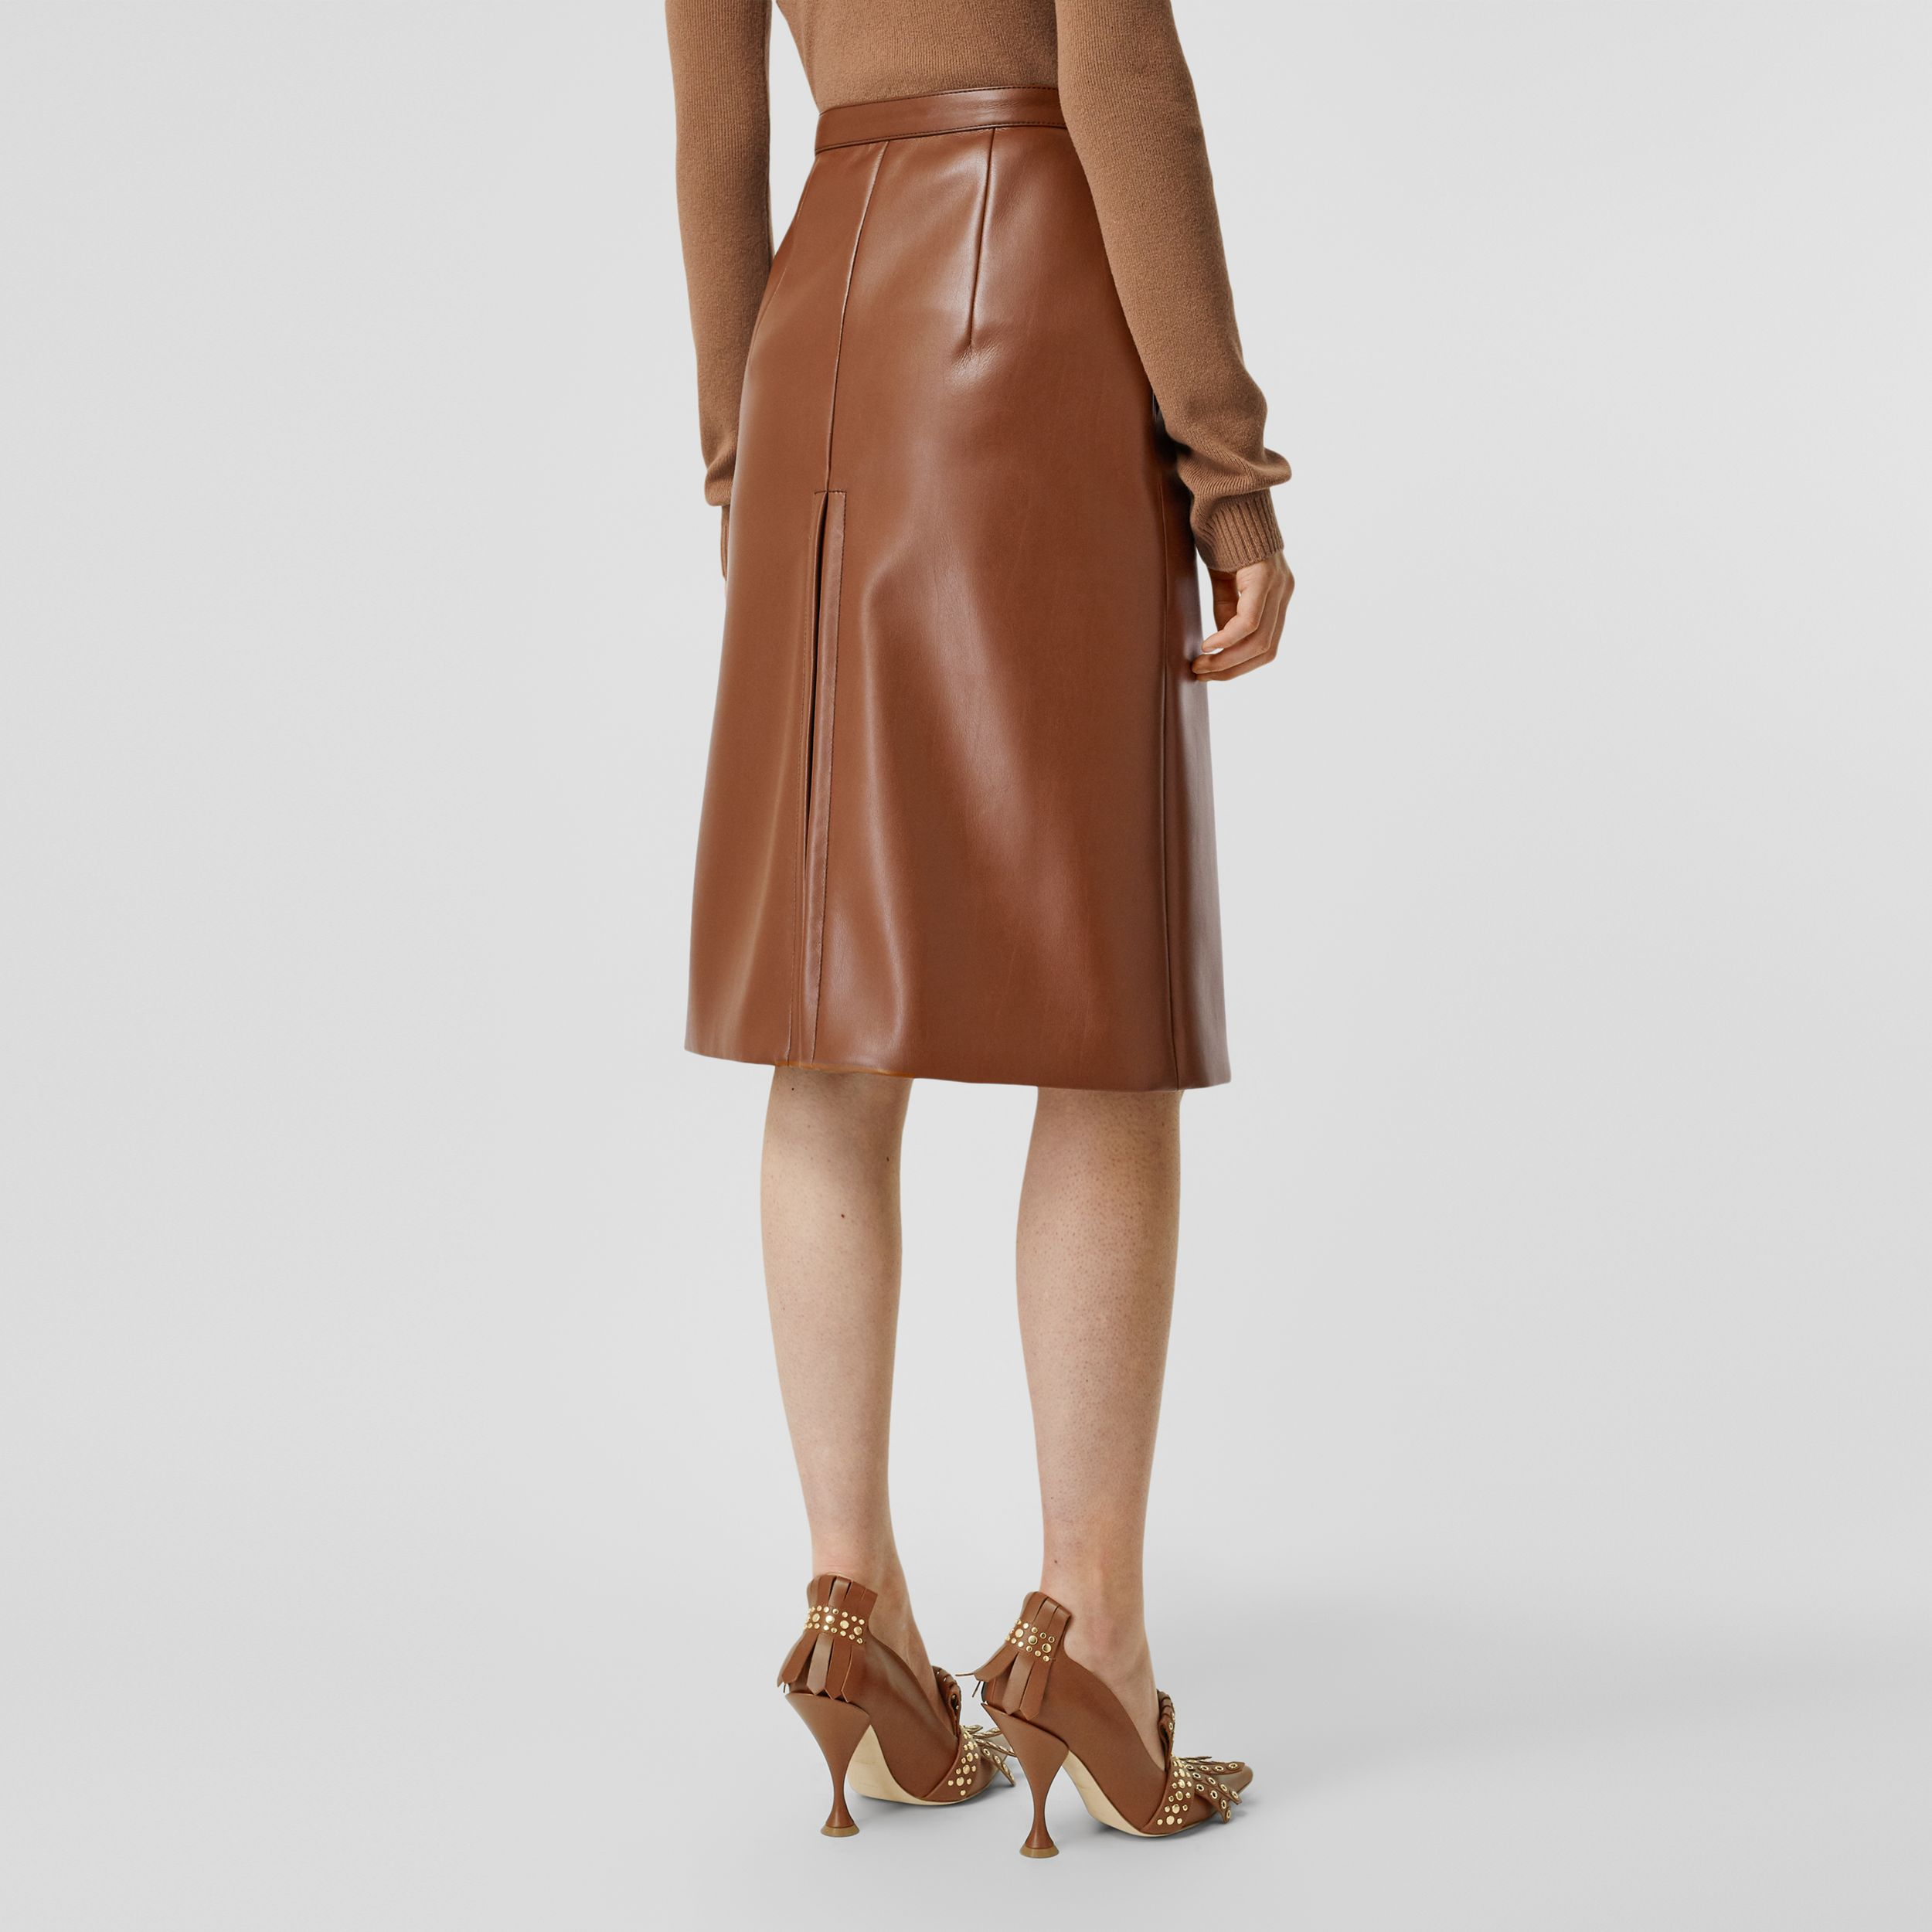 Box Pleat Detail Faux Leather Skirt in Dark Cheshnut Brown - Women | Burberry United Kingdom - 3